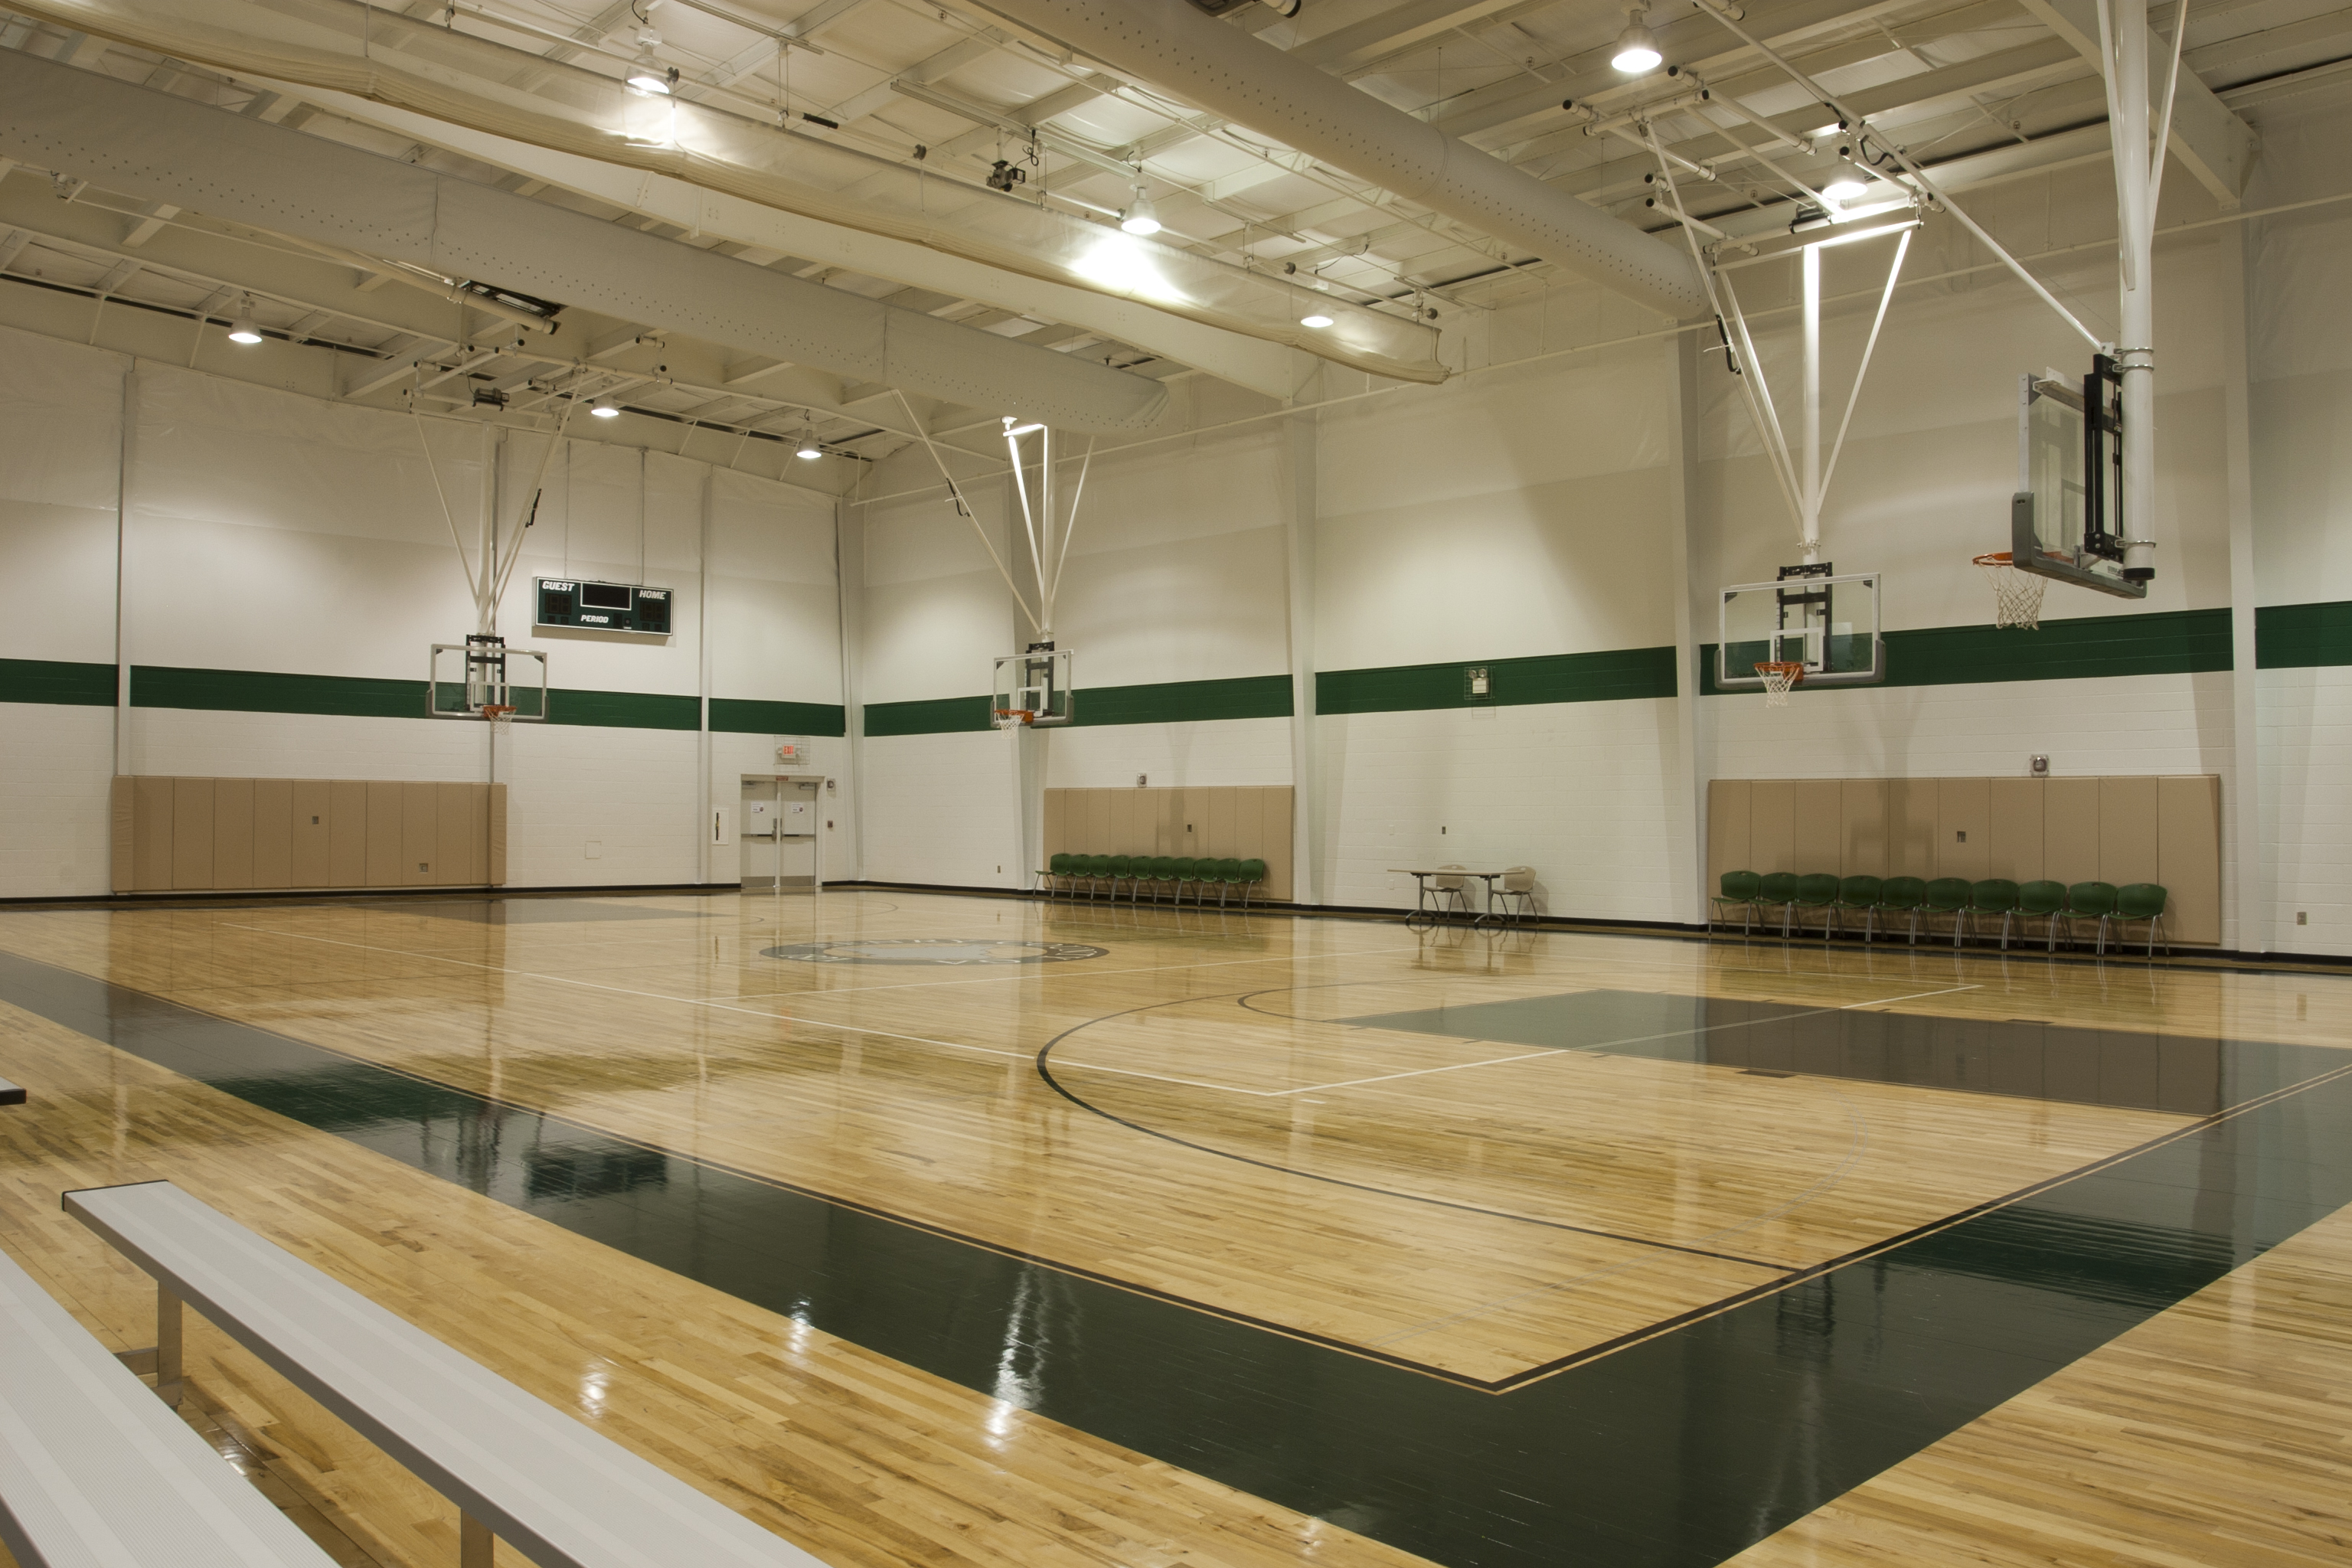 Fairview Rec Center 2